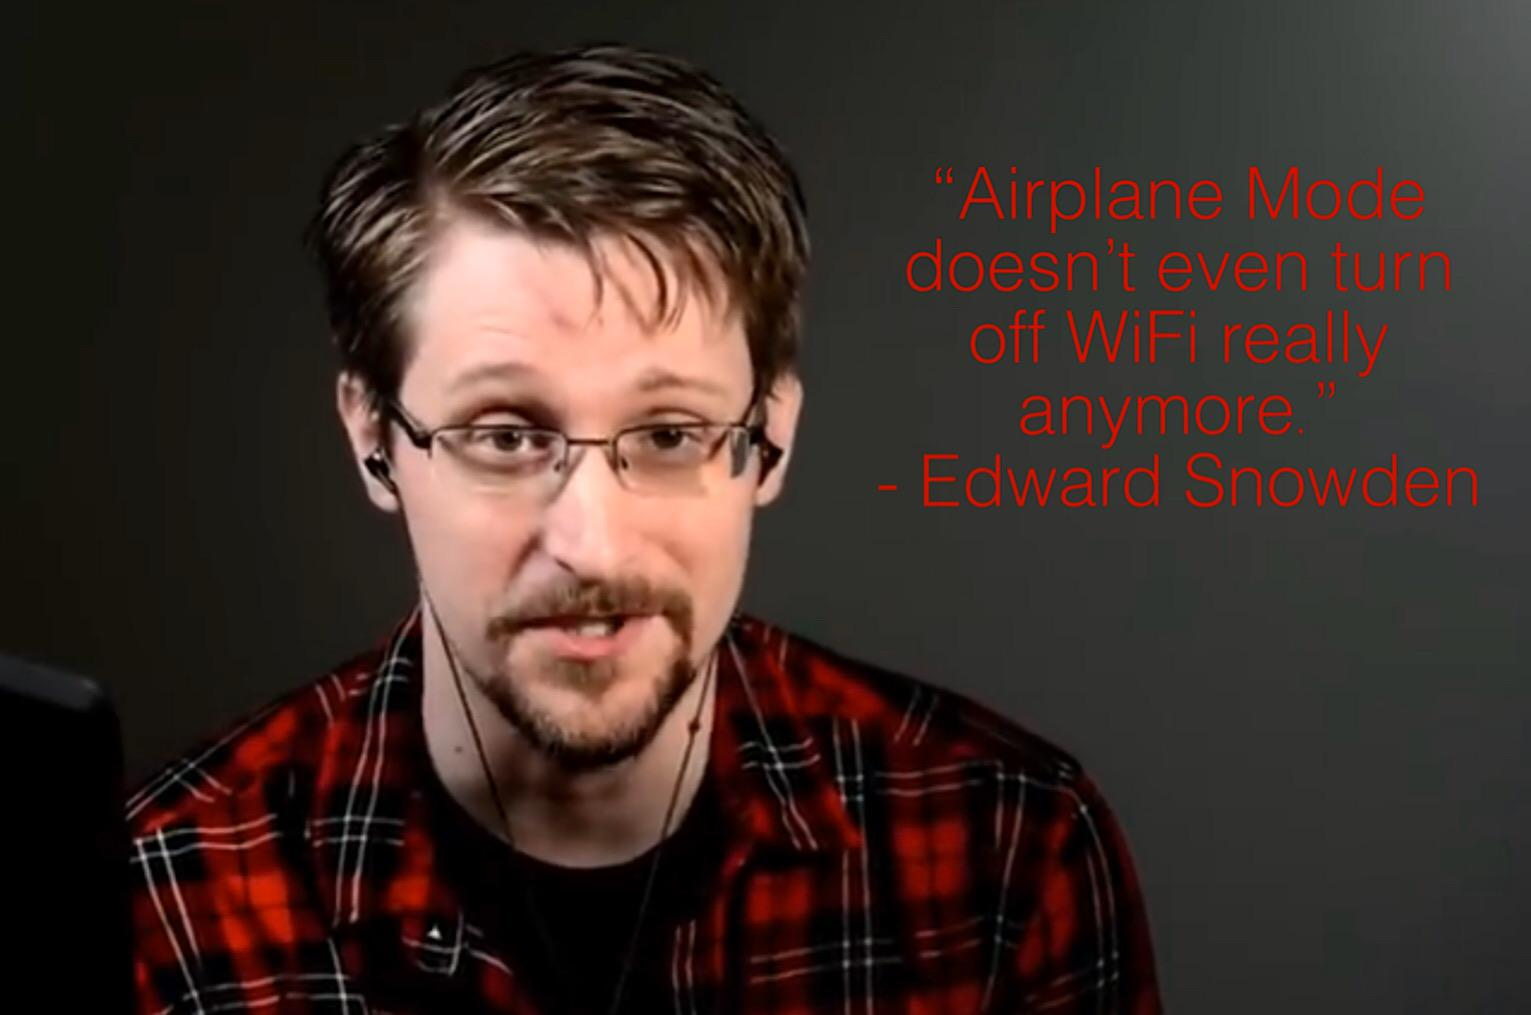 "| q ' I ' , / I I l - A I   - '  ' D ""Airplane Mode doesn't even turn off WiFi really anymore."" - https://inspirational.ly"